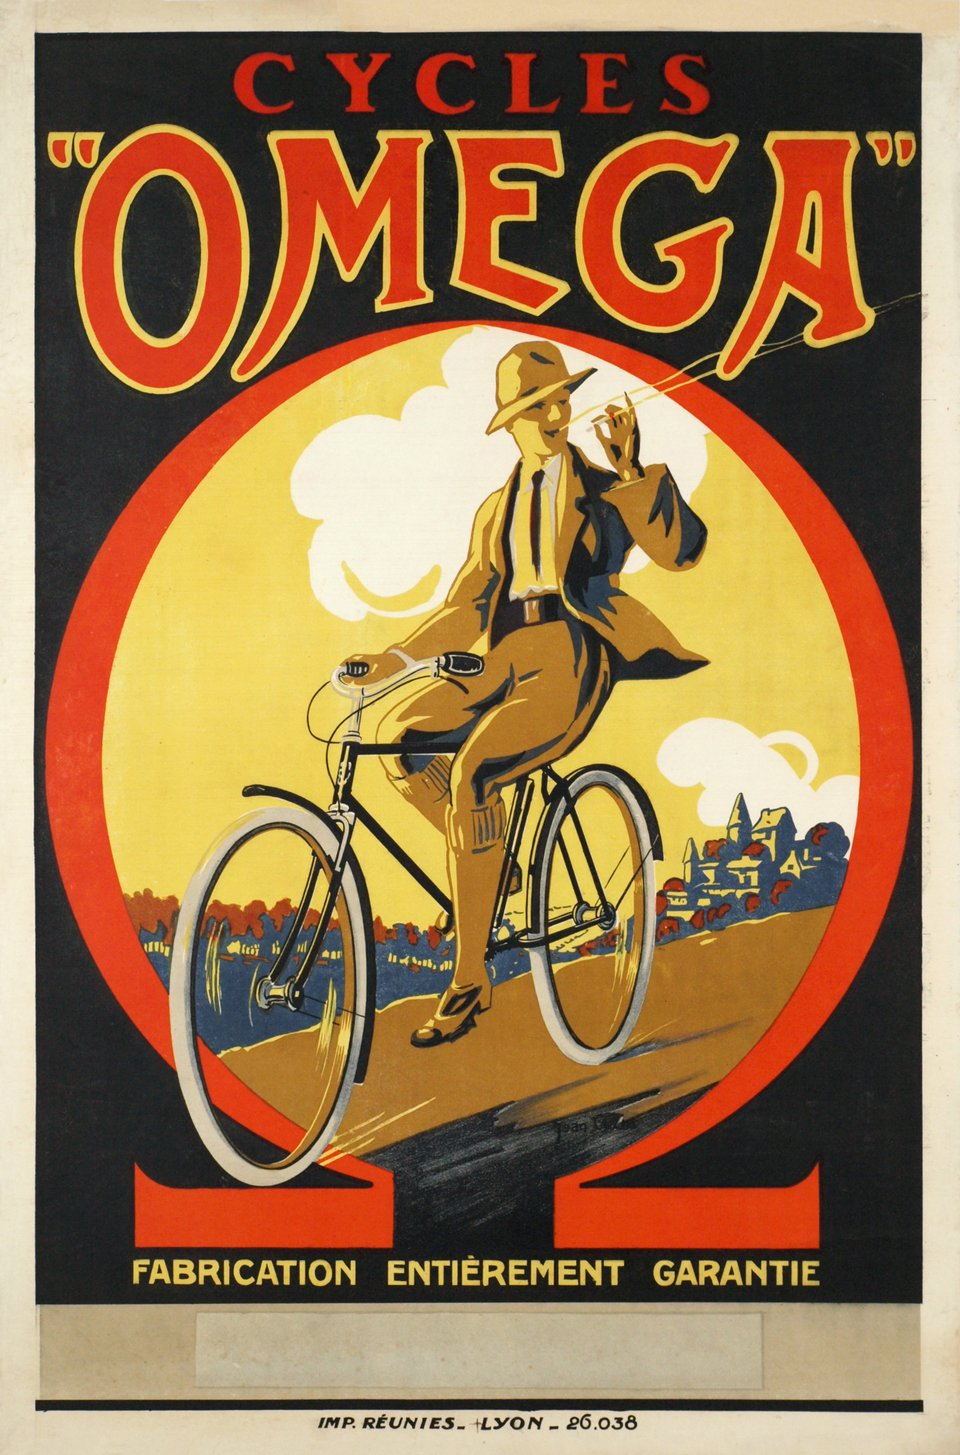 Cycles Omega – Vintage poster – Jean CUGN – 1925